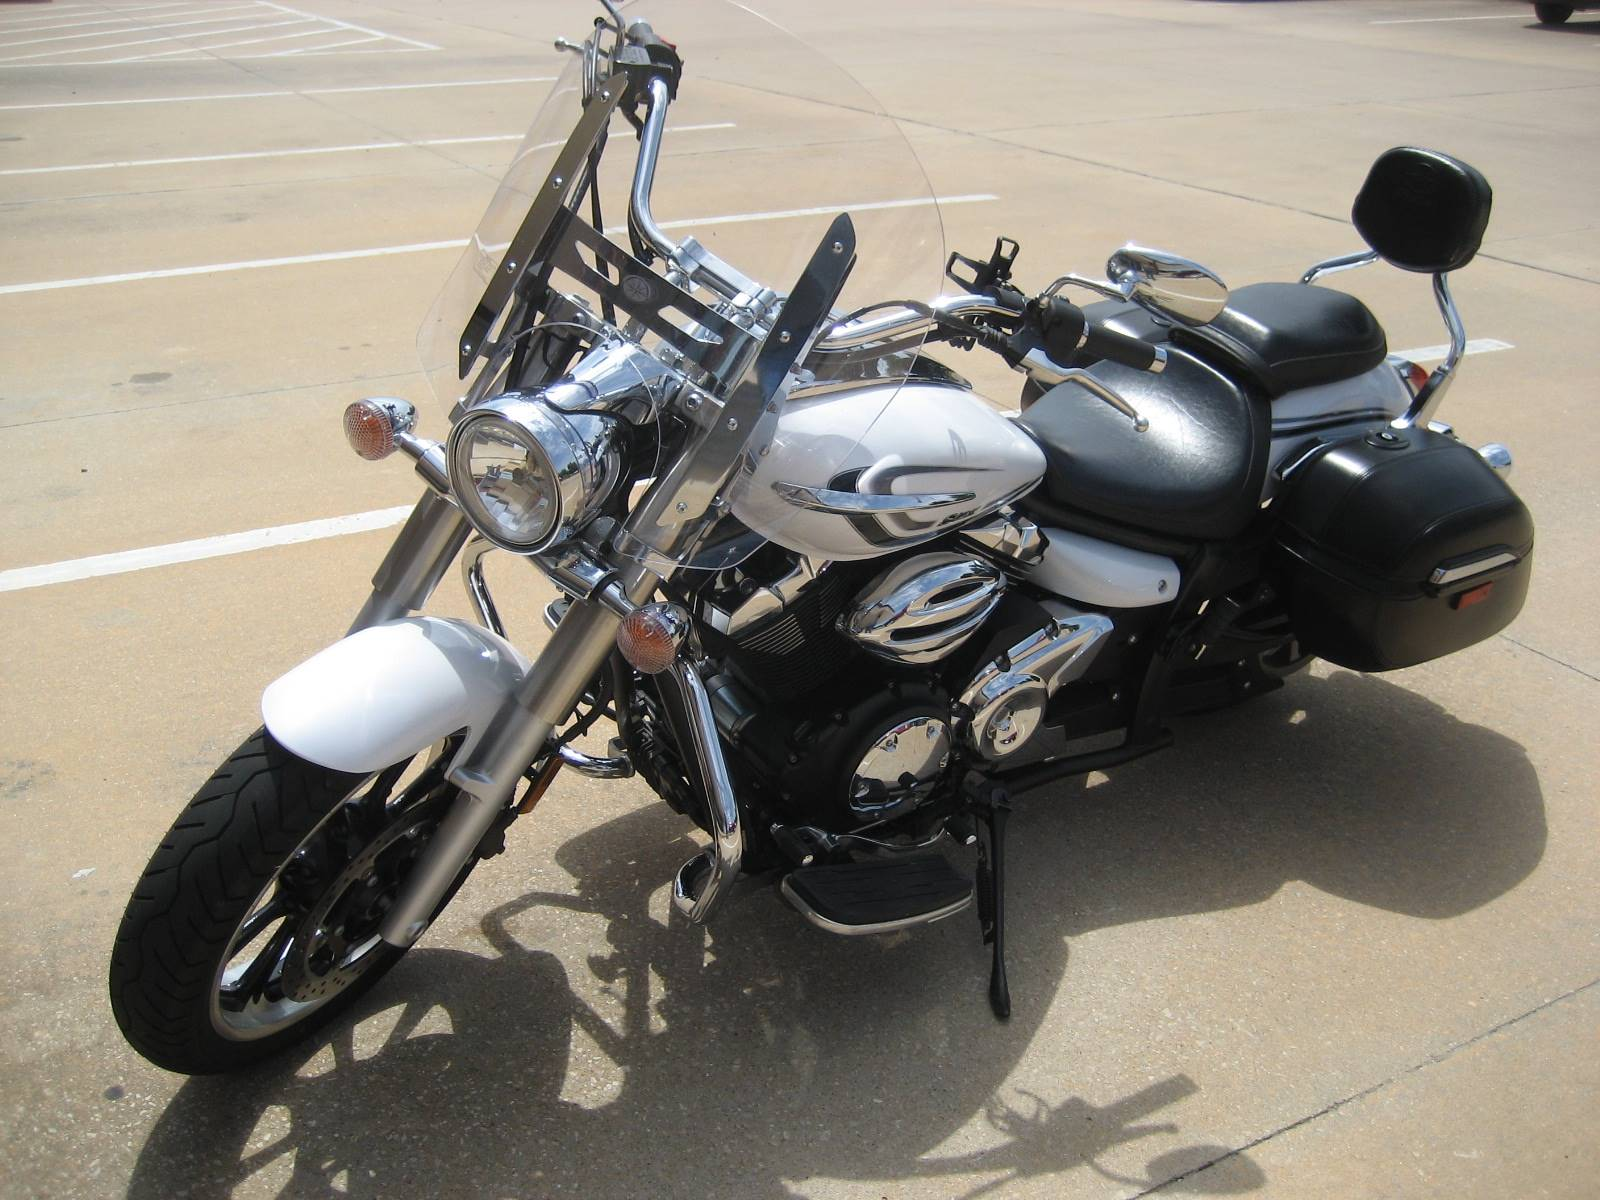 2013 Yamaha V Star 950 in Shawnee, Oklahoma - Photo 3